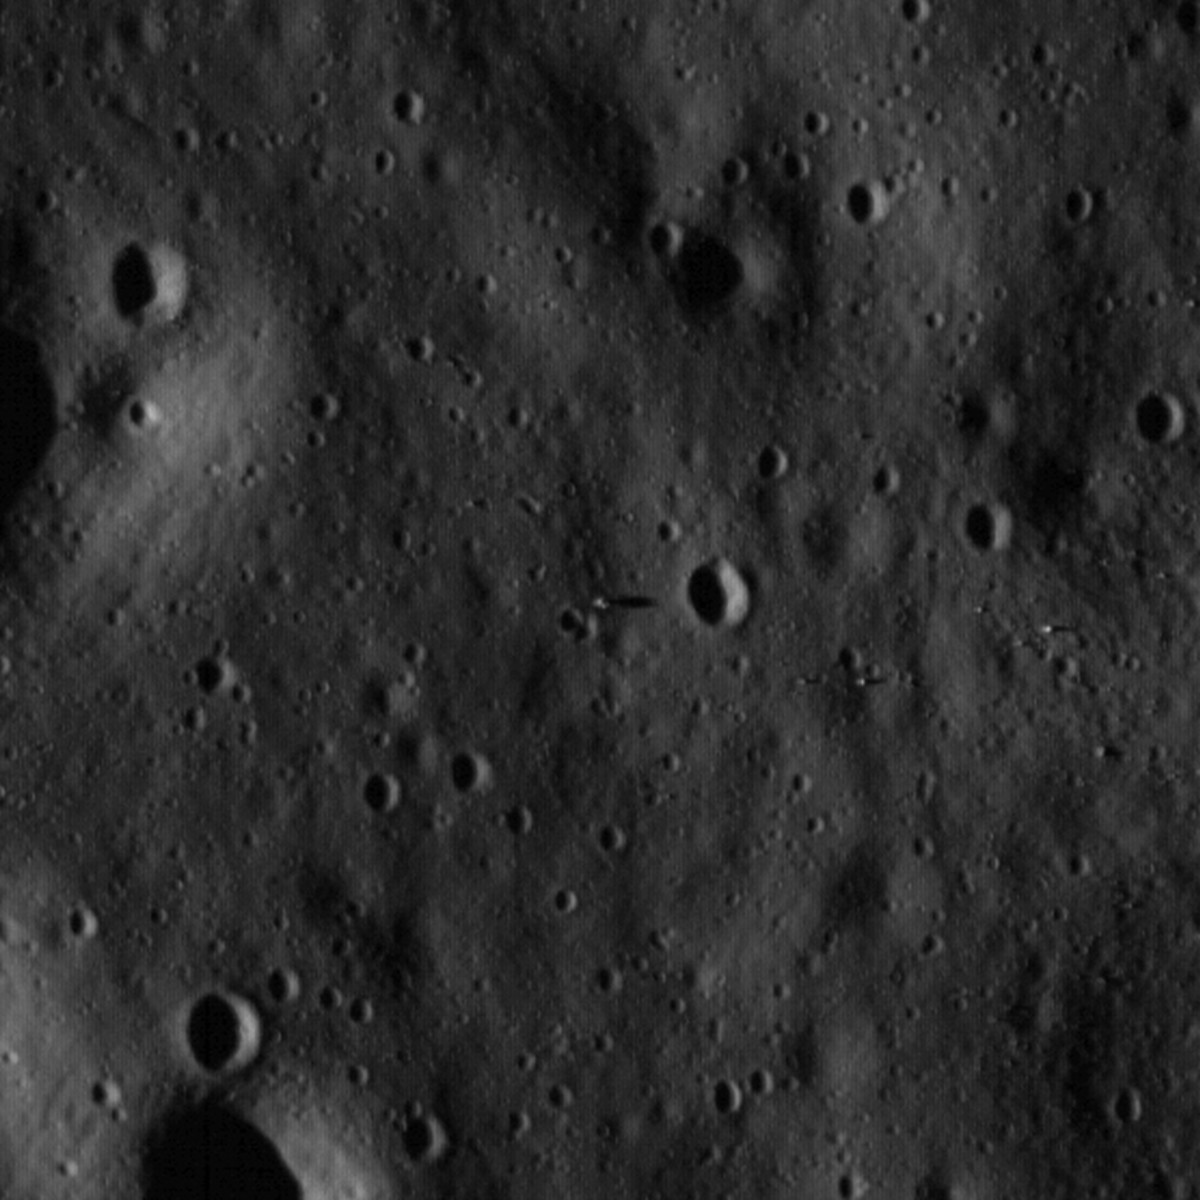 July 2009. Zooming in on last photo so you can see the lander and its shadow (extending to right) in exact center of image.